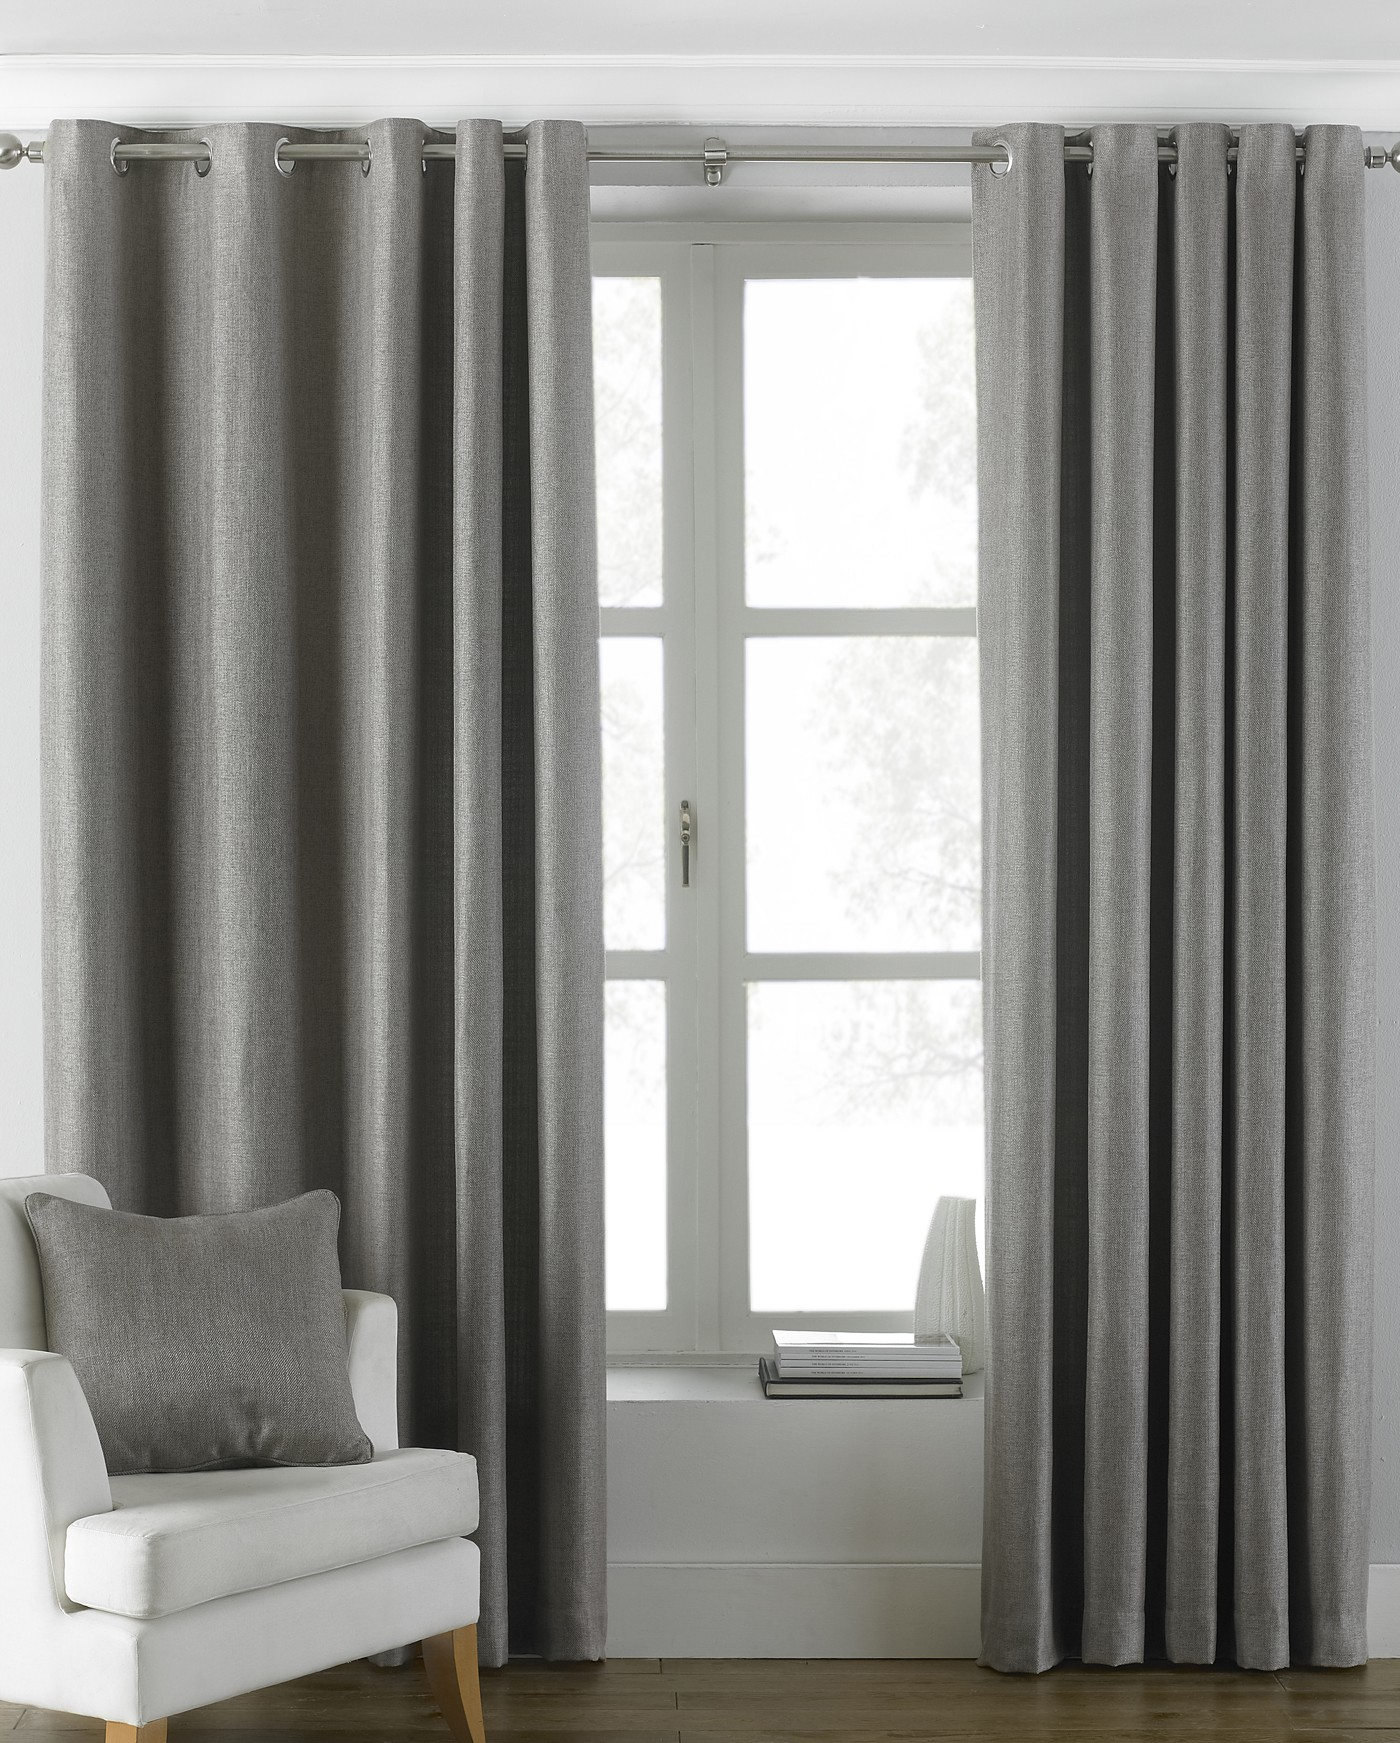 The Home Furnishings Company Atlantic Grey Curtains/Blind/Cushion